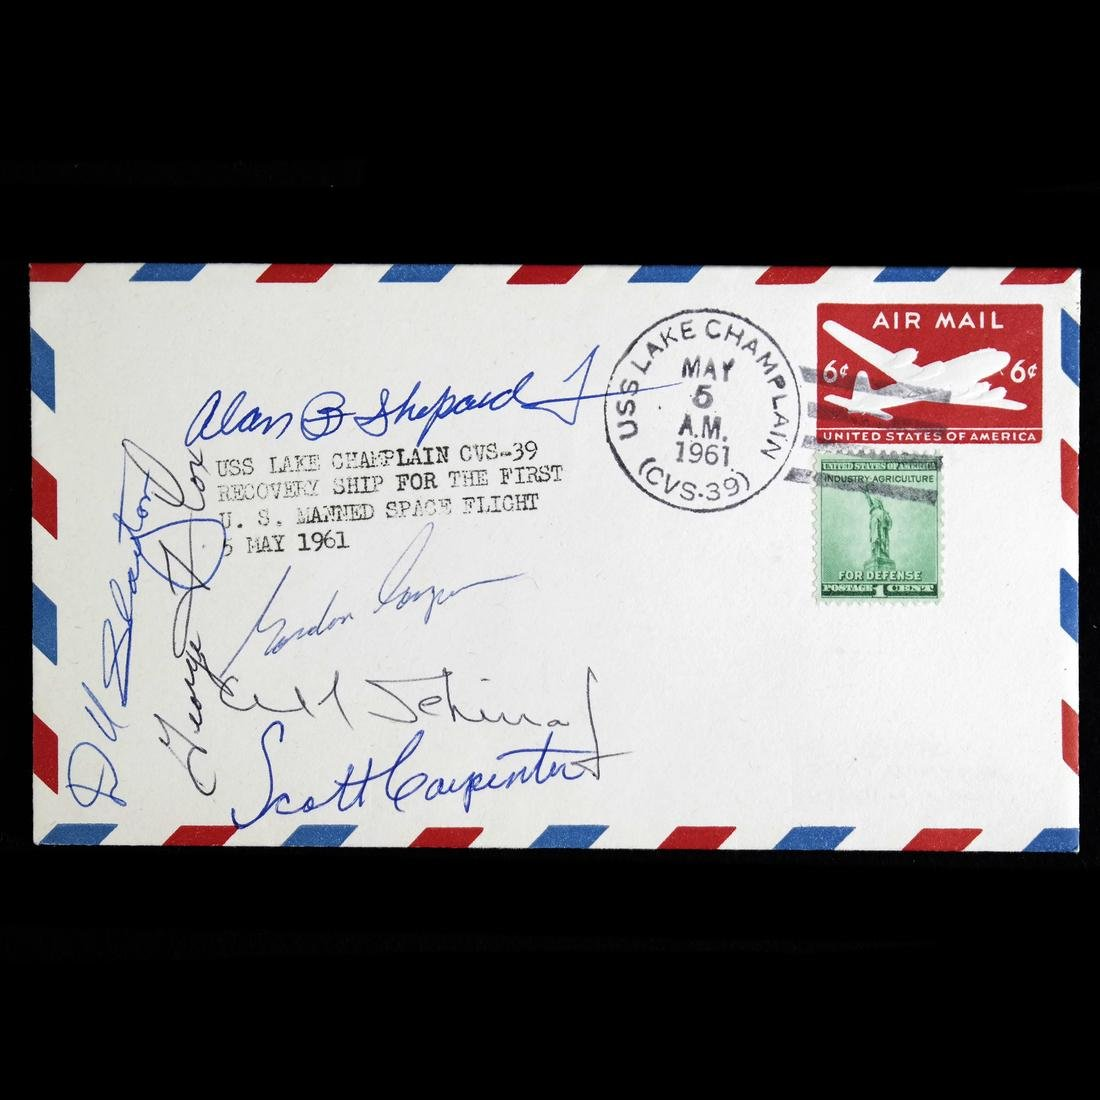 1961 FREEDOM 7 POSTAL COVER SIGNED BY EARLY ASTRONAUTS